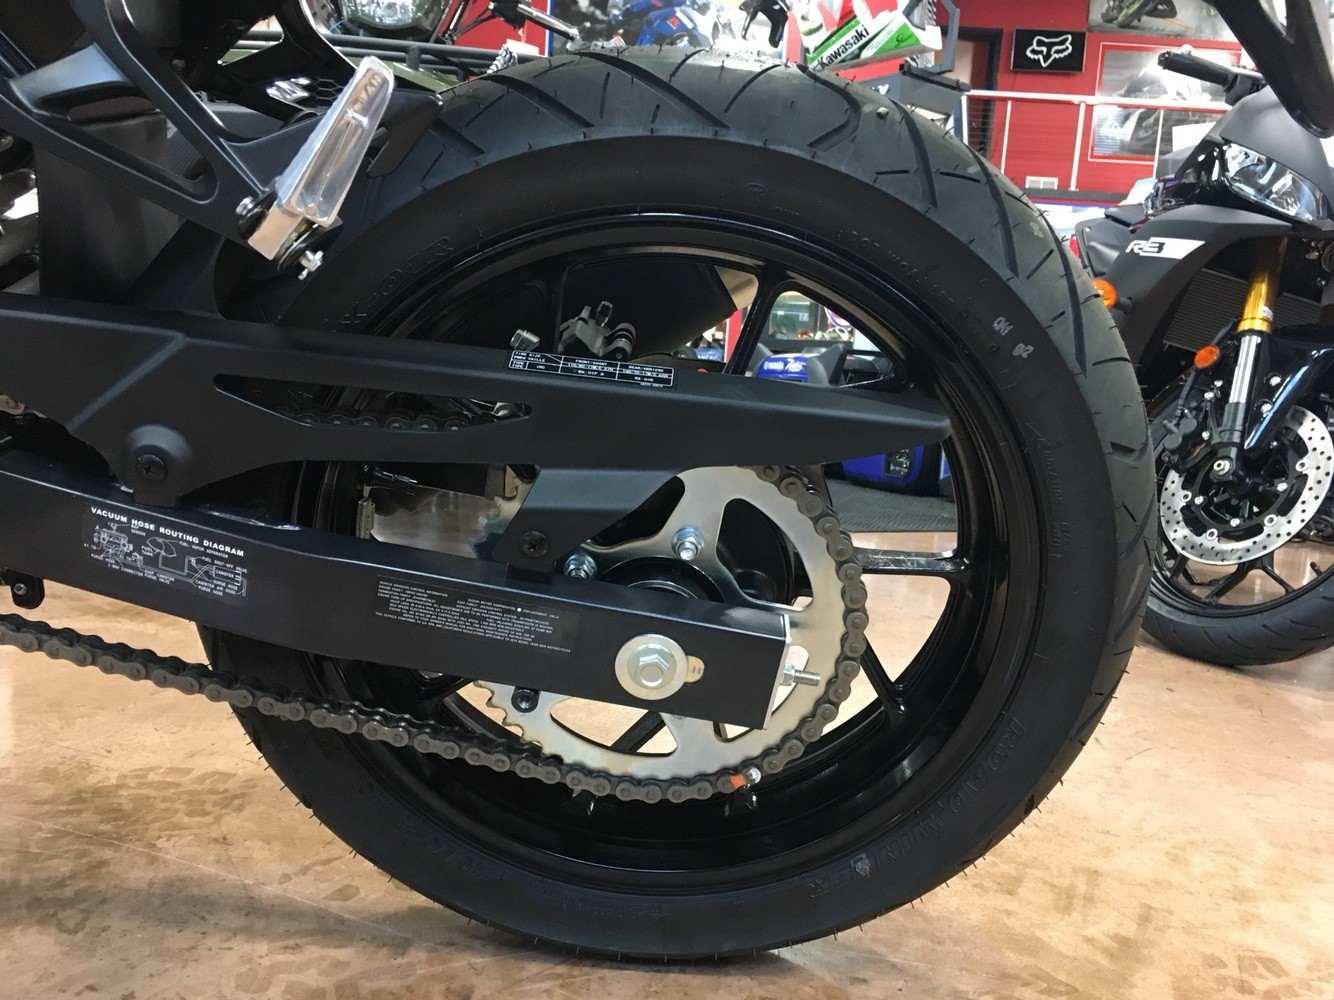 2018 Suzuki GSX250R in Evansville, Indiana - Photo 21